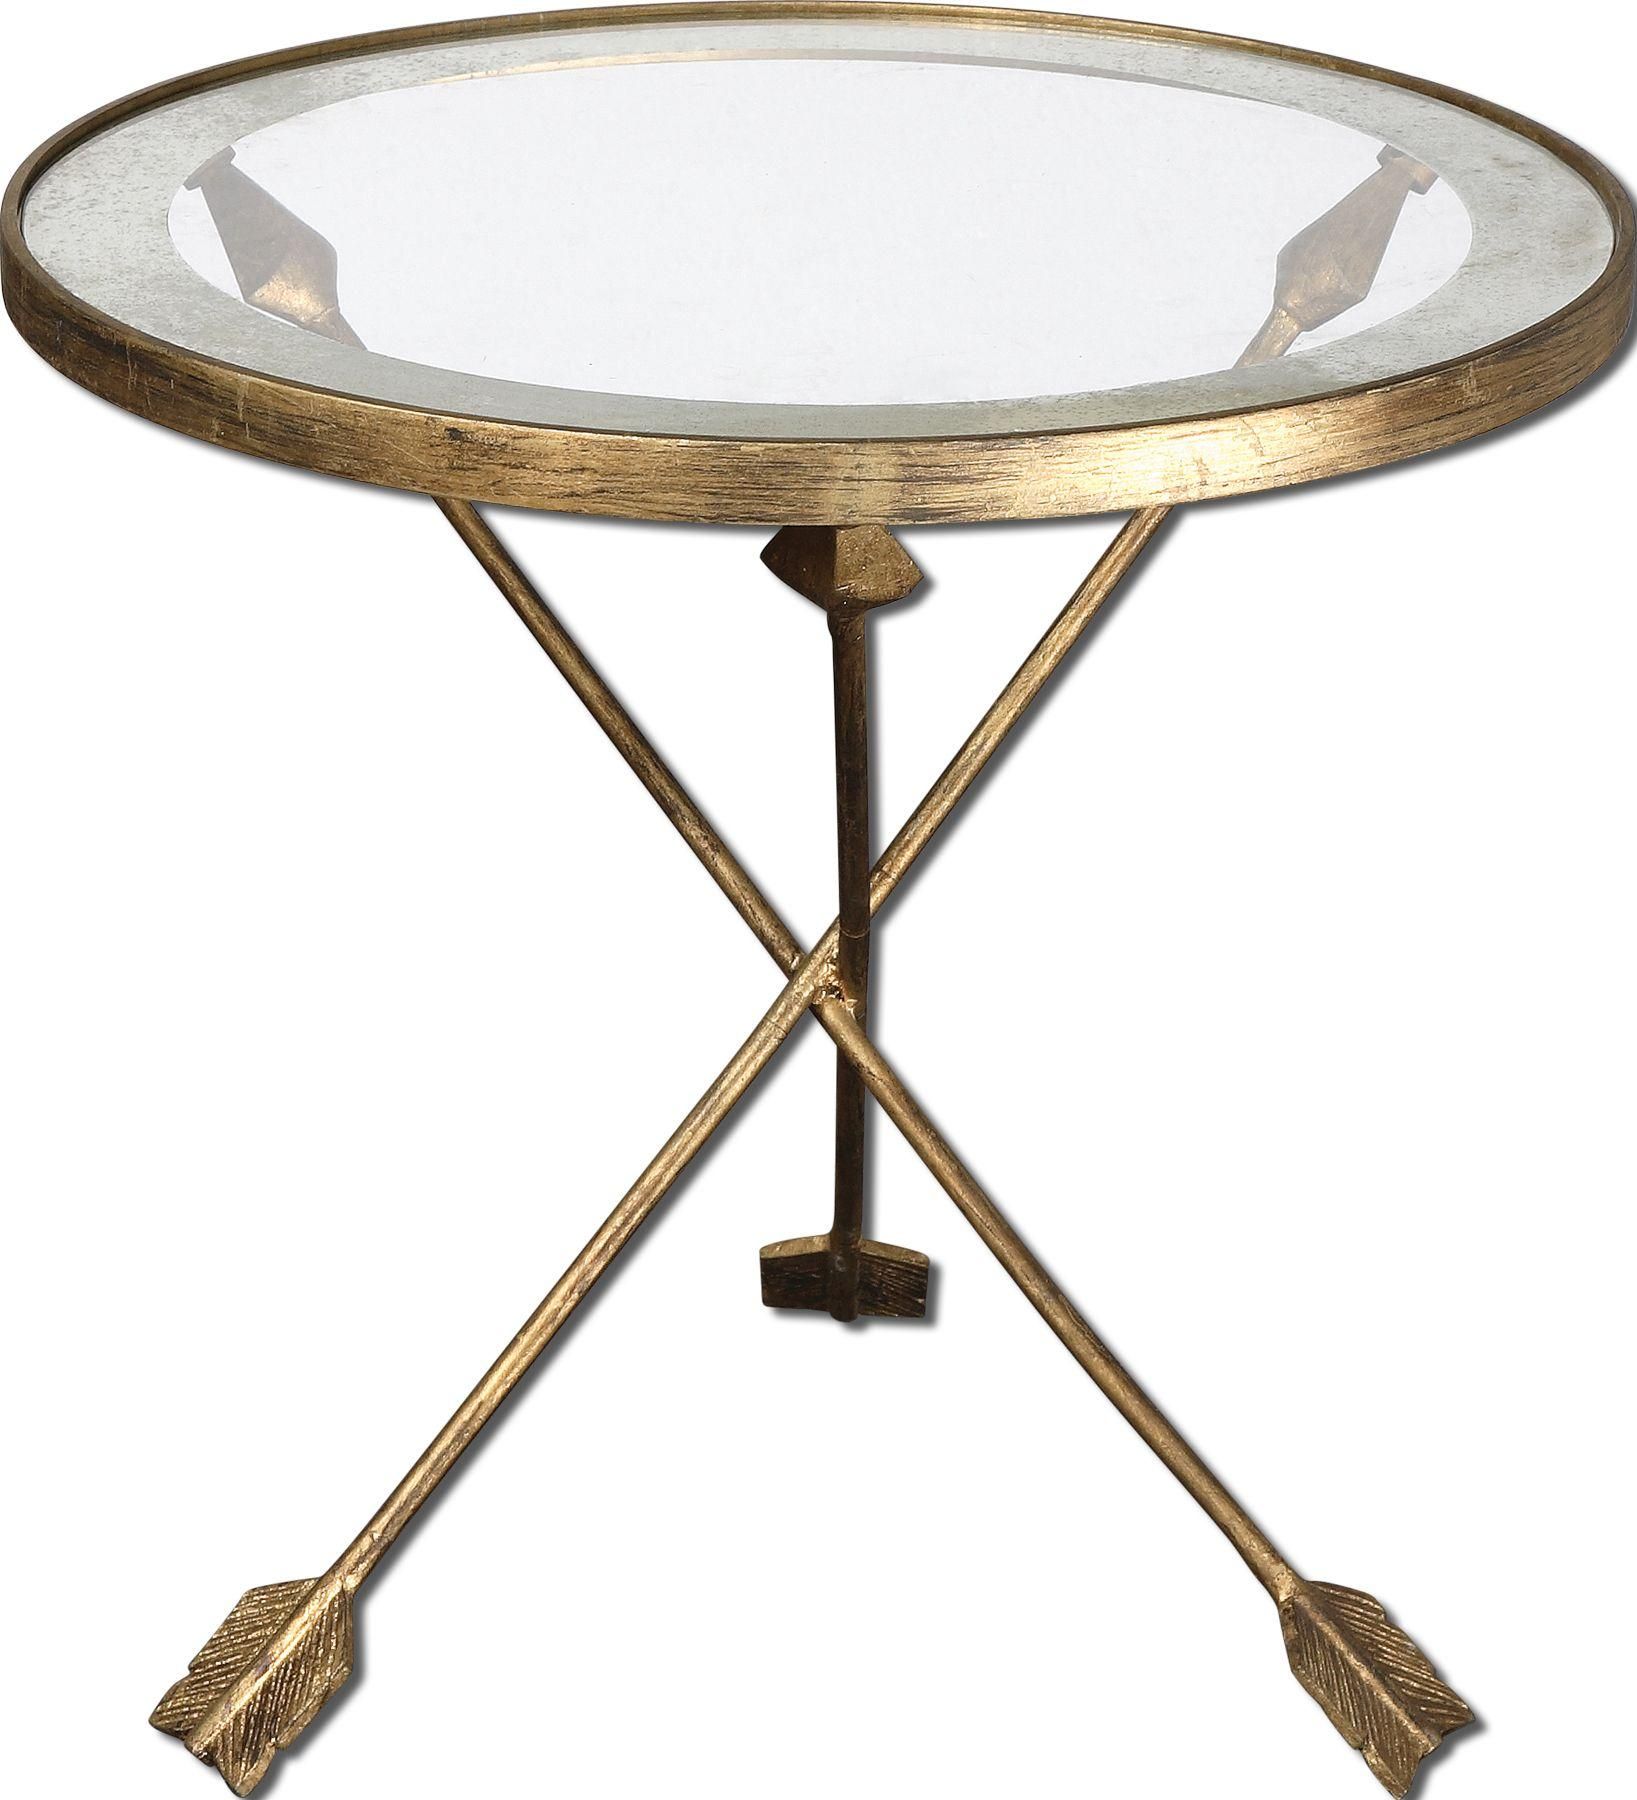 uttermost accent furniture occasional tables aero products color bombay company marble top table white round rustic living room mid century kidney coffee black and outdoor